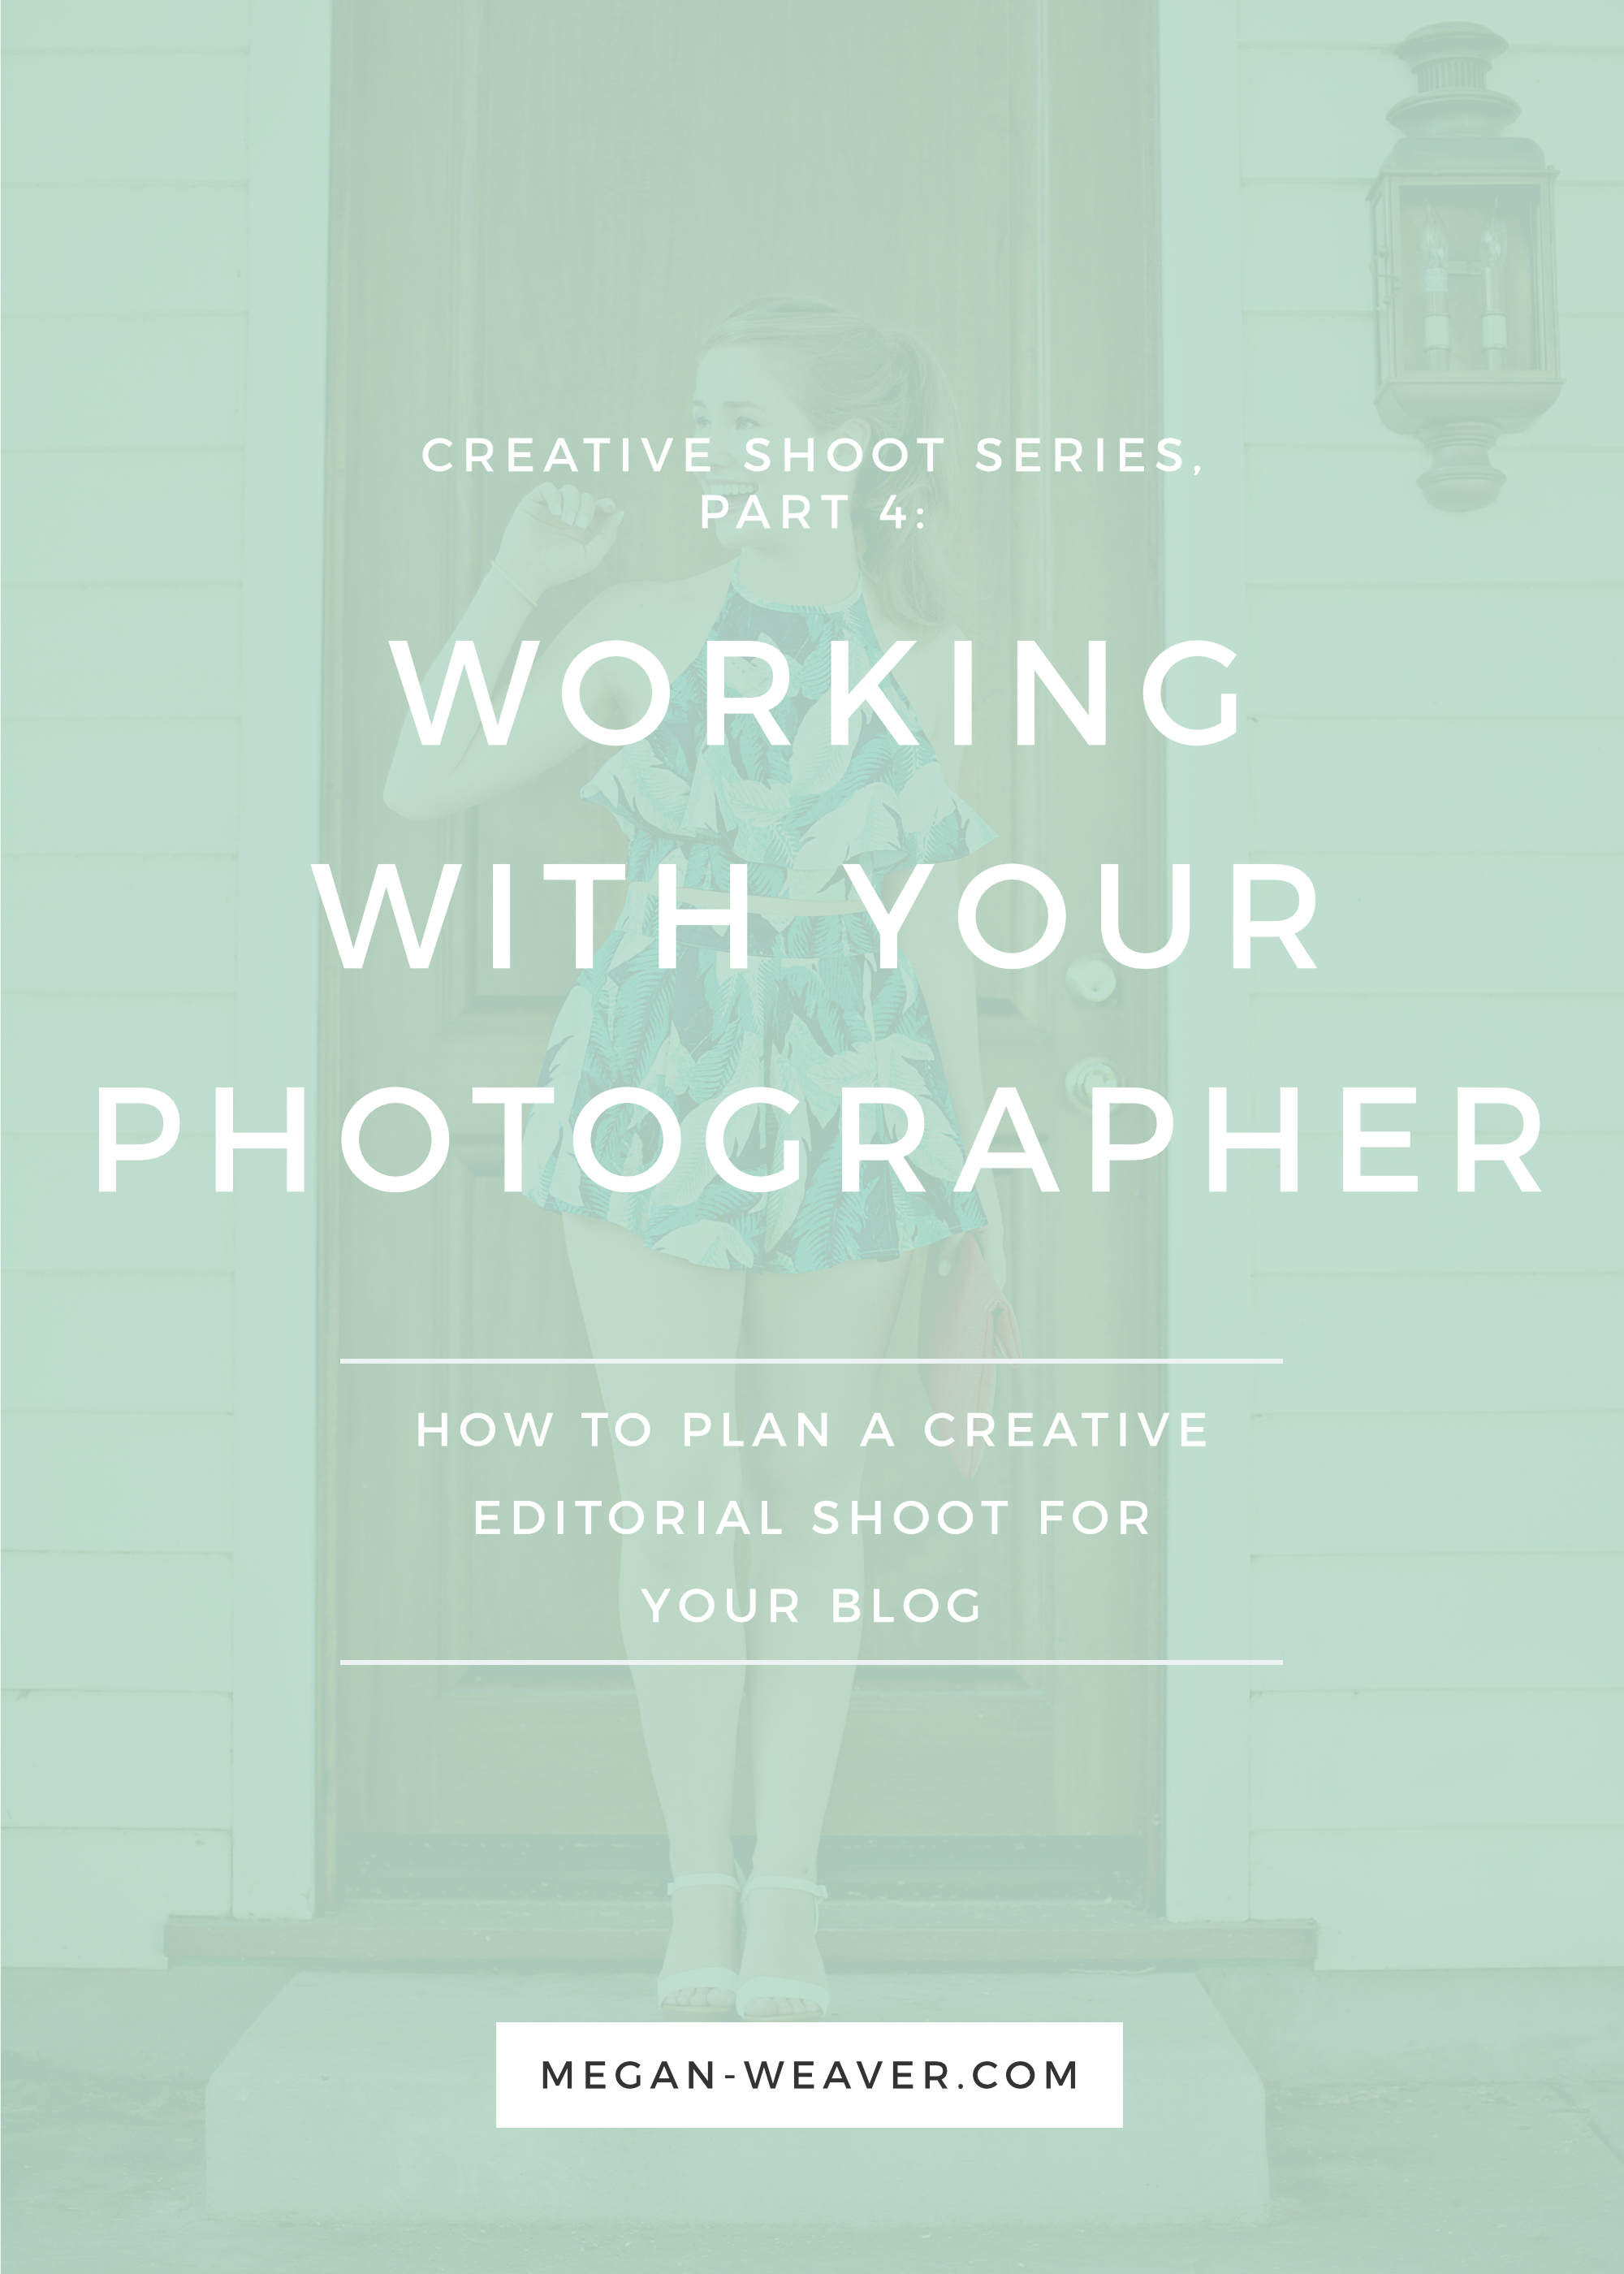 Part 4 of our Creative Shoot Series is all about working with your photographer—from how to find the best one for your brand to coordinating plans for a successful shoot.